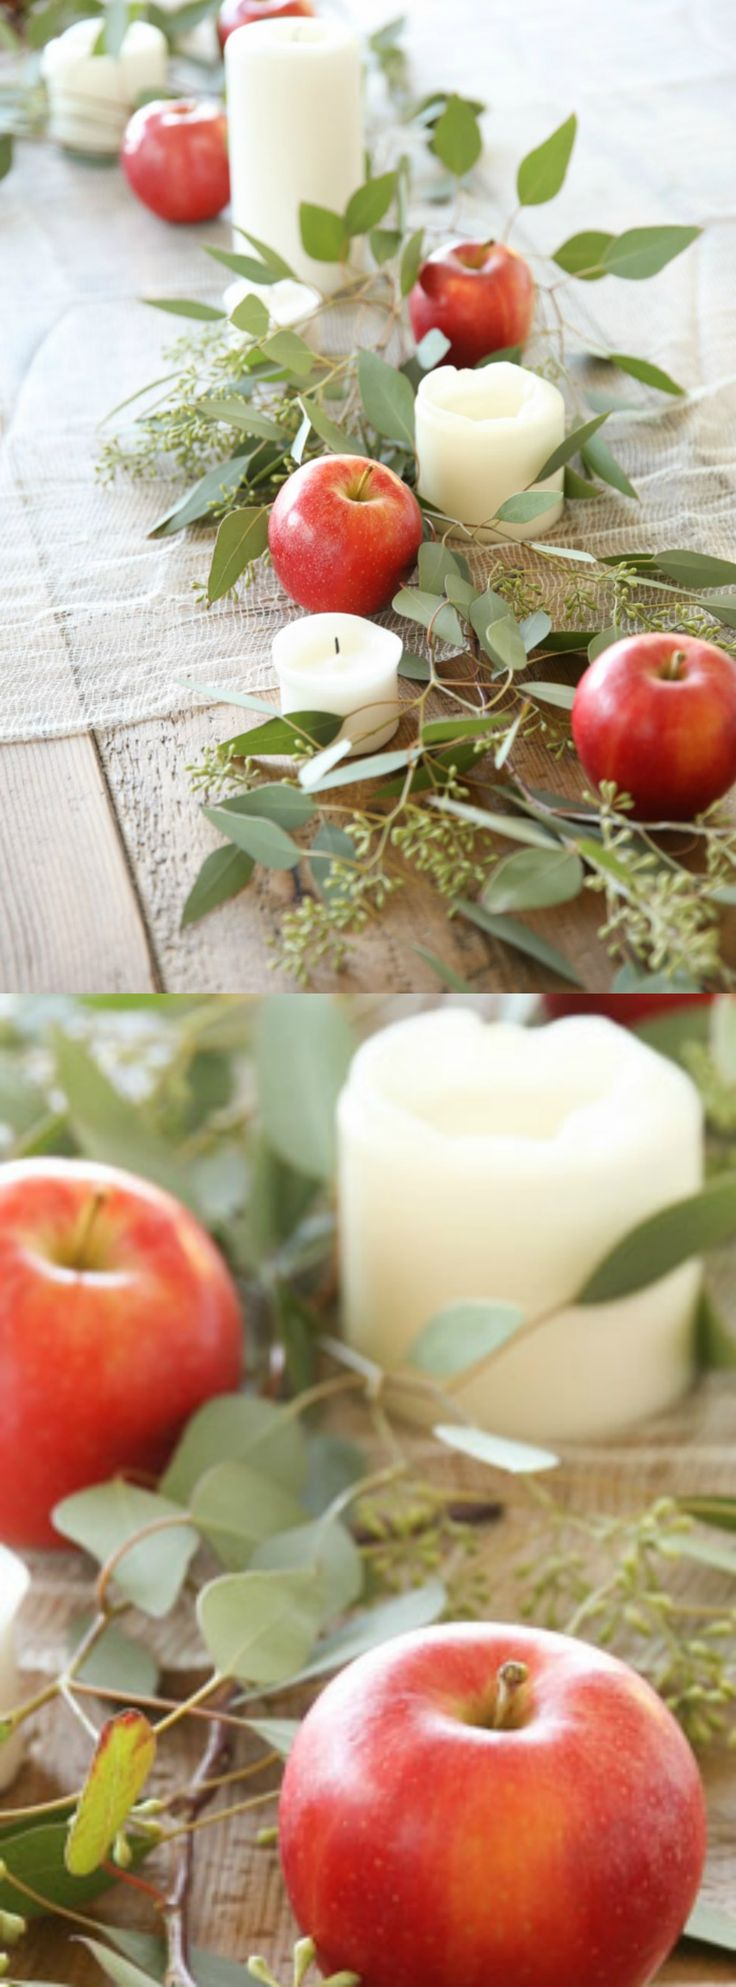 Easy 5 minute Thanksgiving or Christmas table setting that anyone can create without effort!